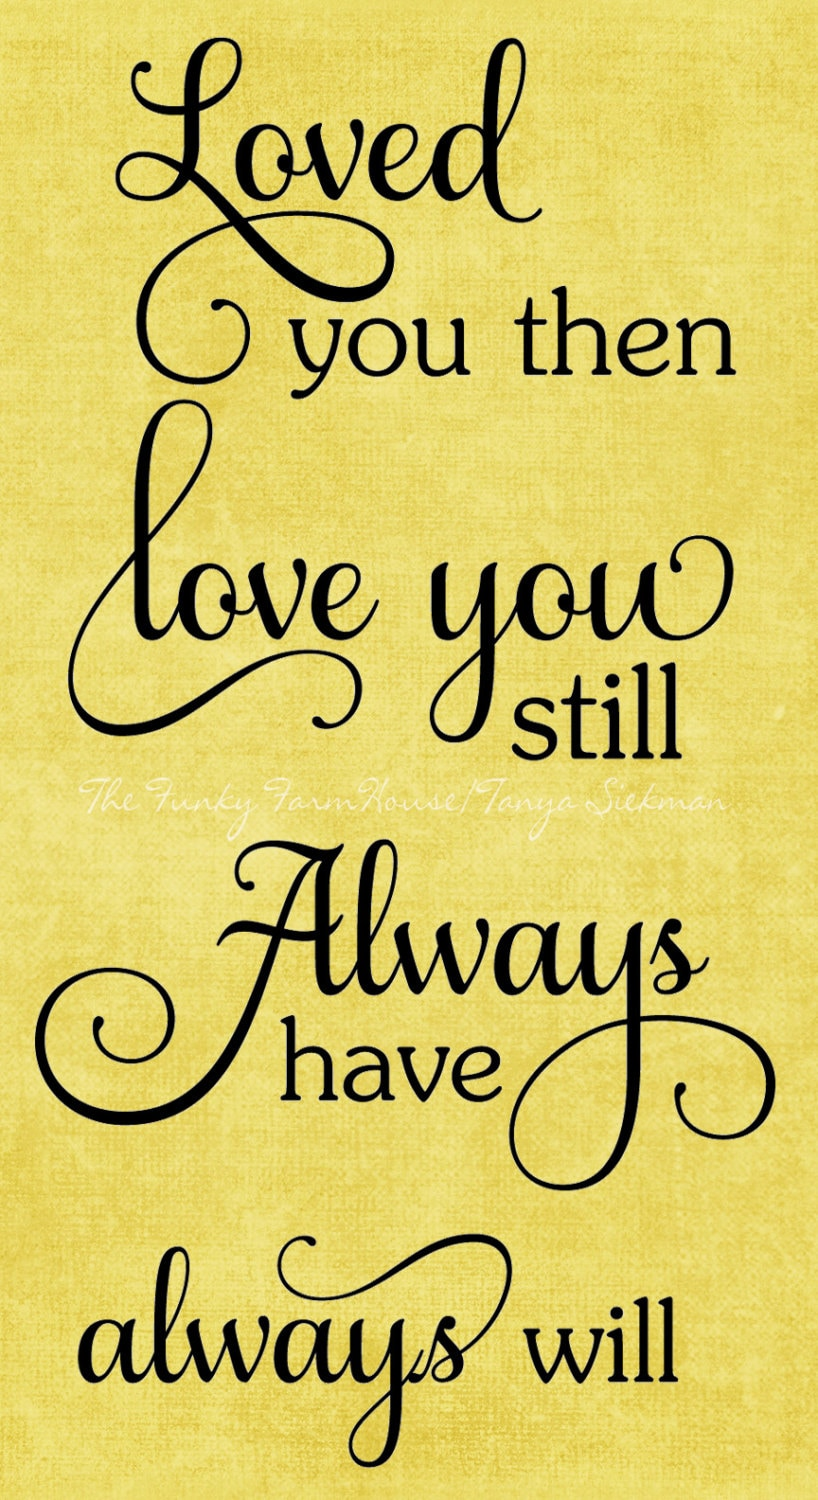 Download SVG DXF & PNG Loved you then Love you still Always have | Etsy